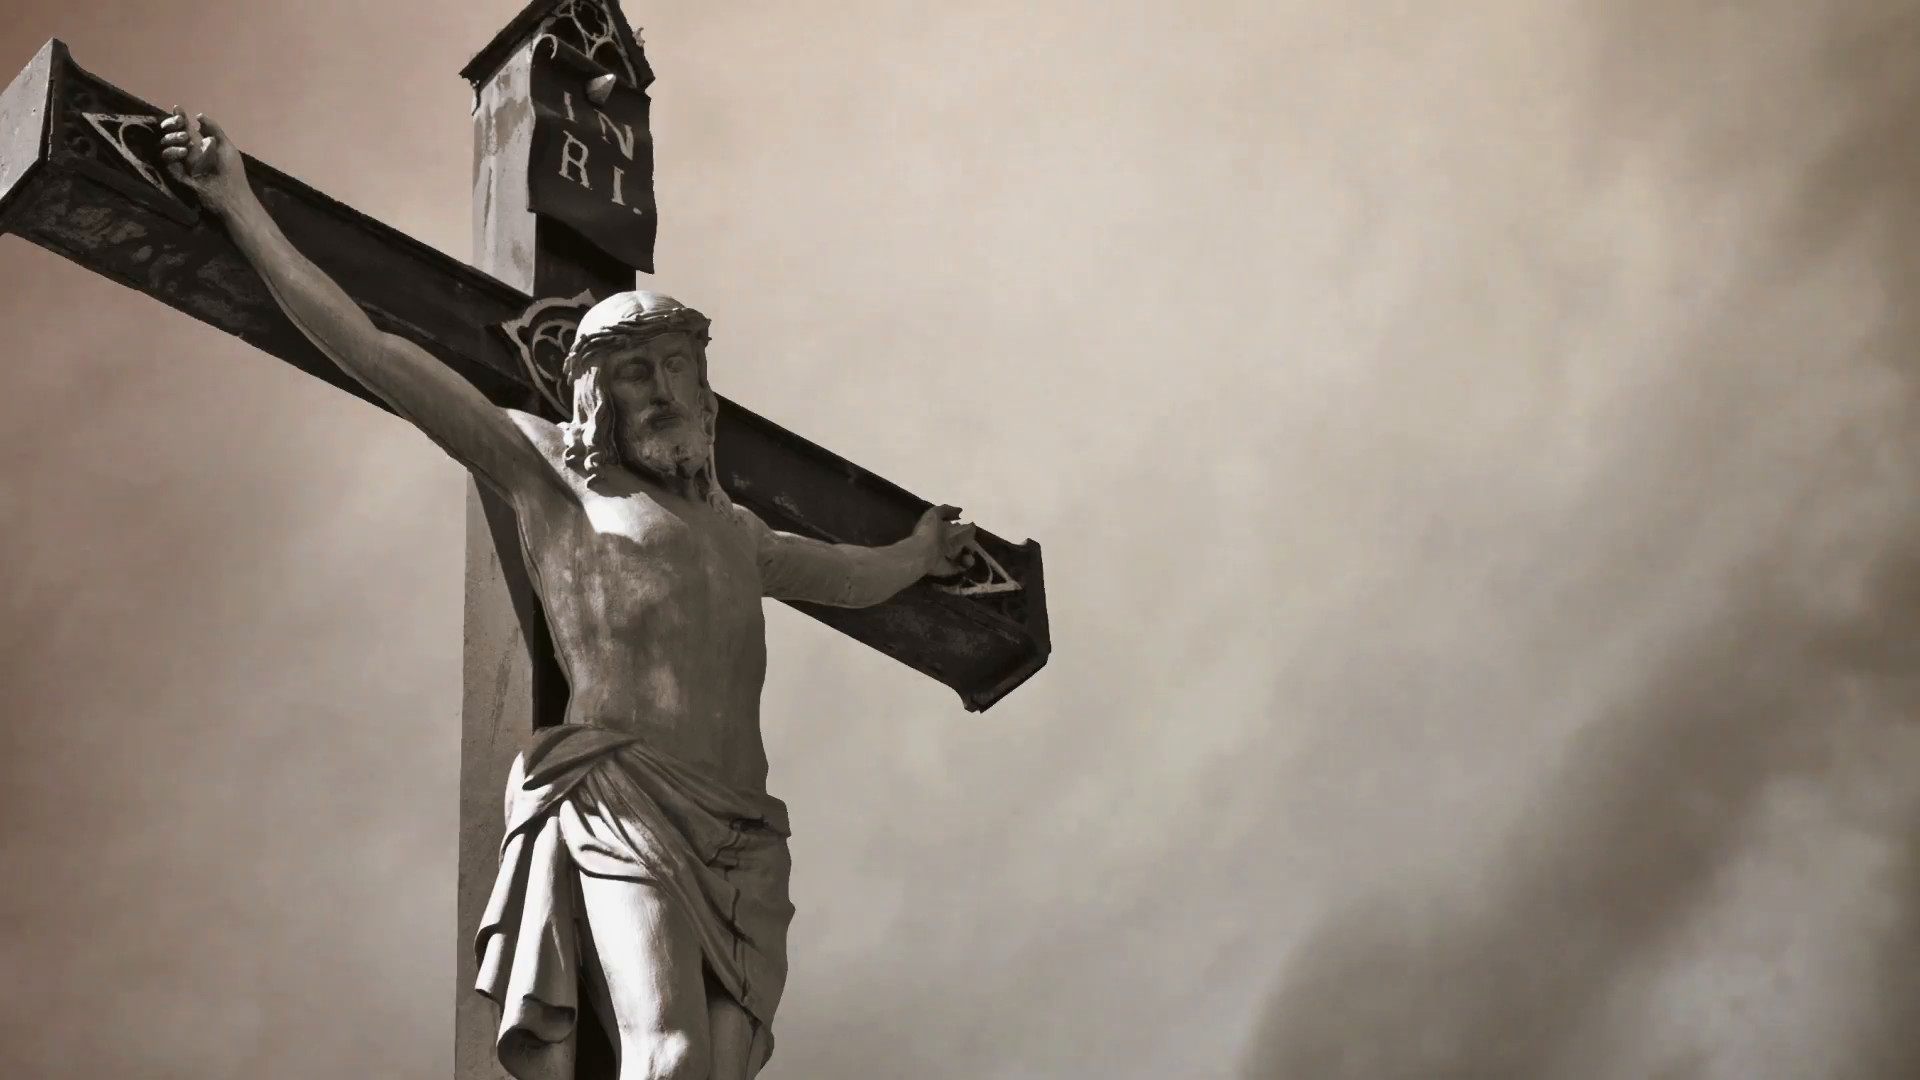 Res: 1920x1080, Christian cross with Jesus Christ statue over stormy clouds time lapse.  , 1080p, hd format Stock Video Footage - Videoblocks